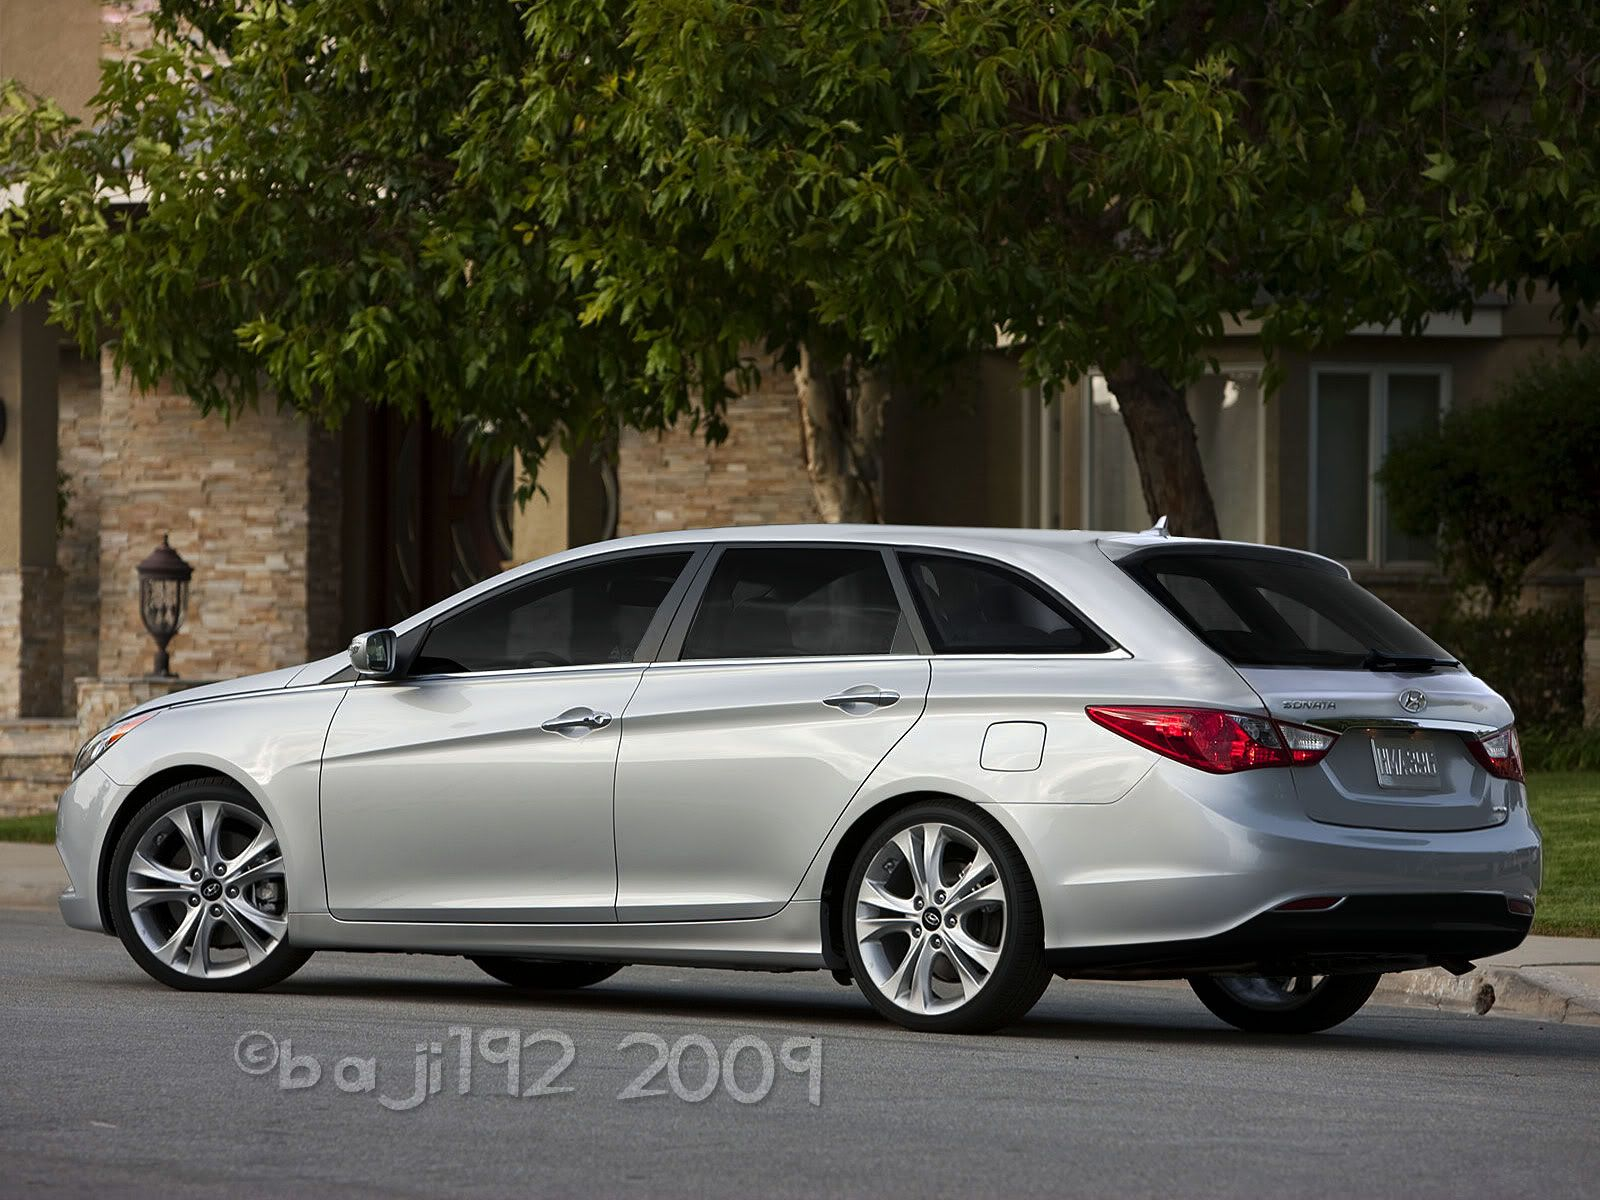 hyundai sonata shooting brake 2012 hyundai i40 tourer hyundai sonata cars toyota camry. Black Bedroom Furniture Sets. Home Design Ideas